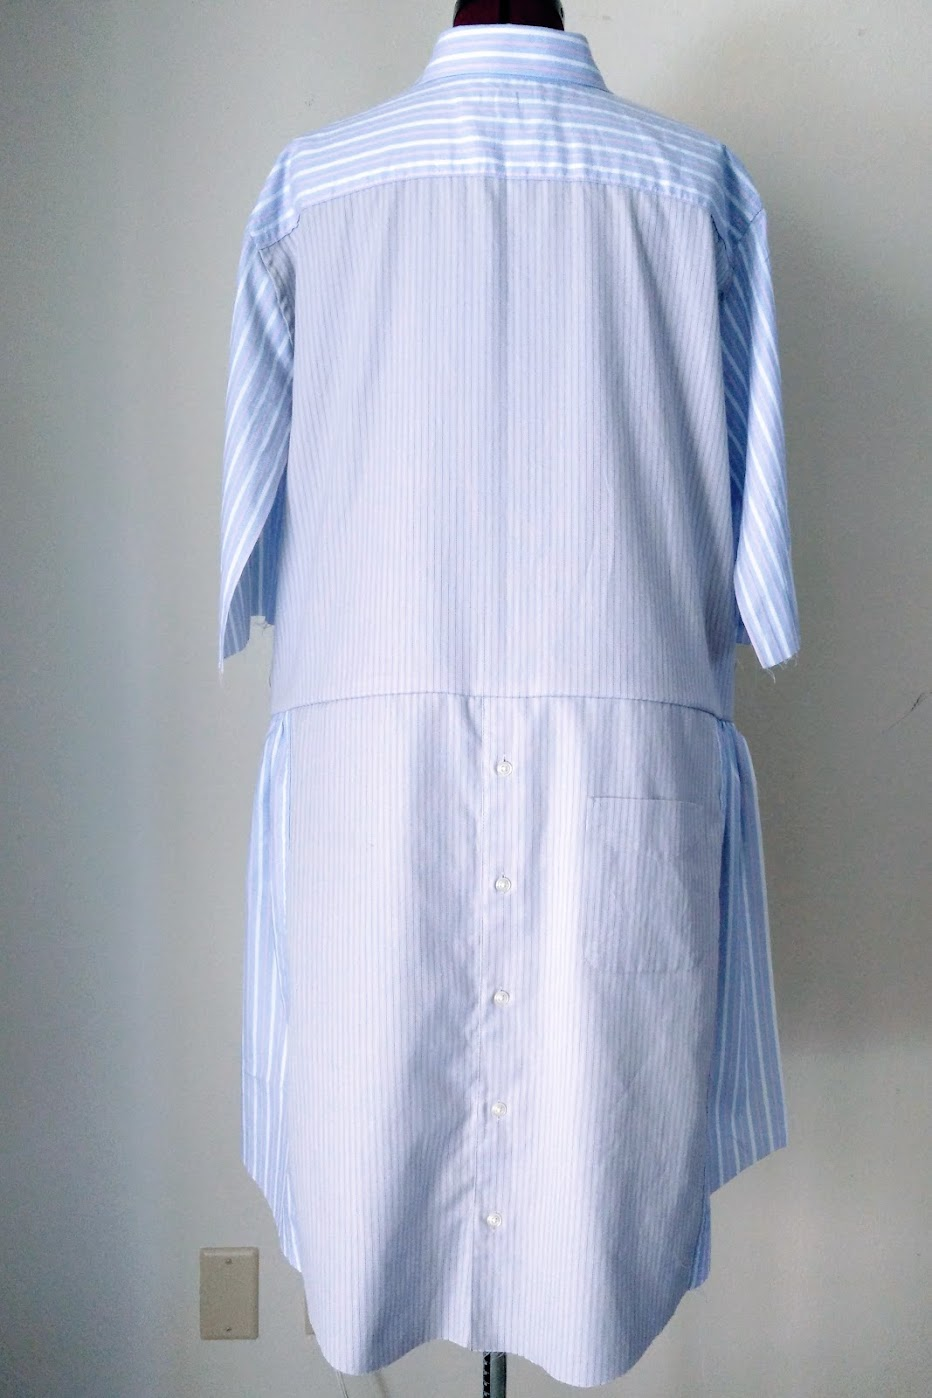 In-Progress: DIY Shirt Dress with Bow Waist Tie - DIY Fashion Garments | fafafoom.com